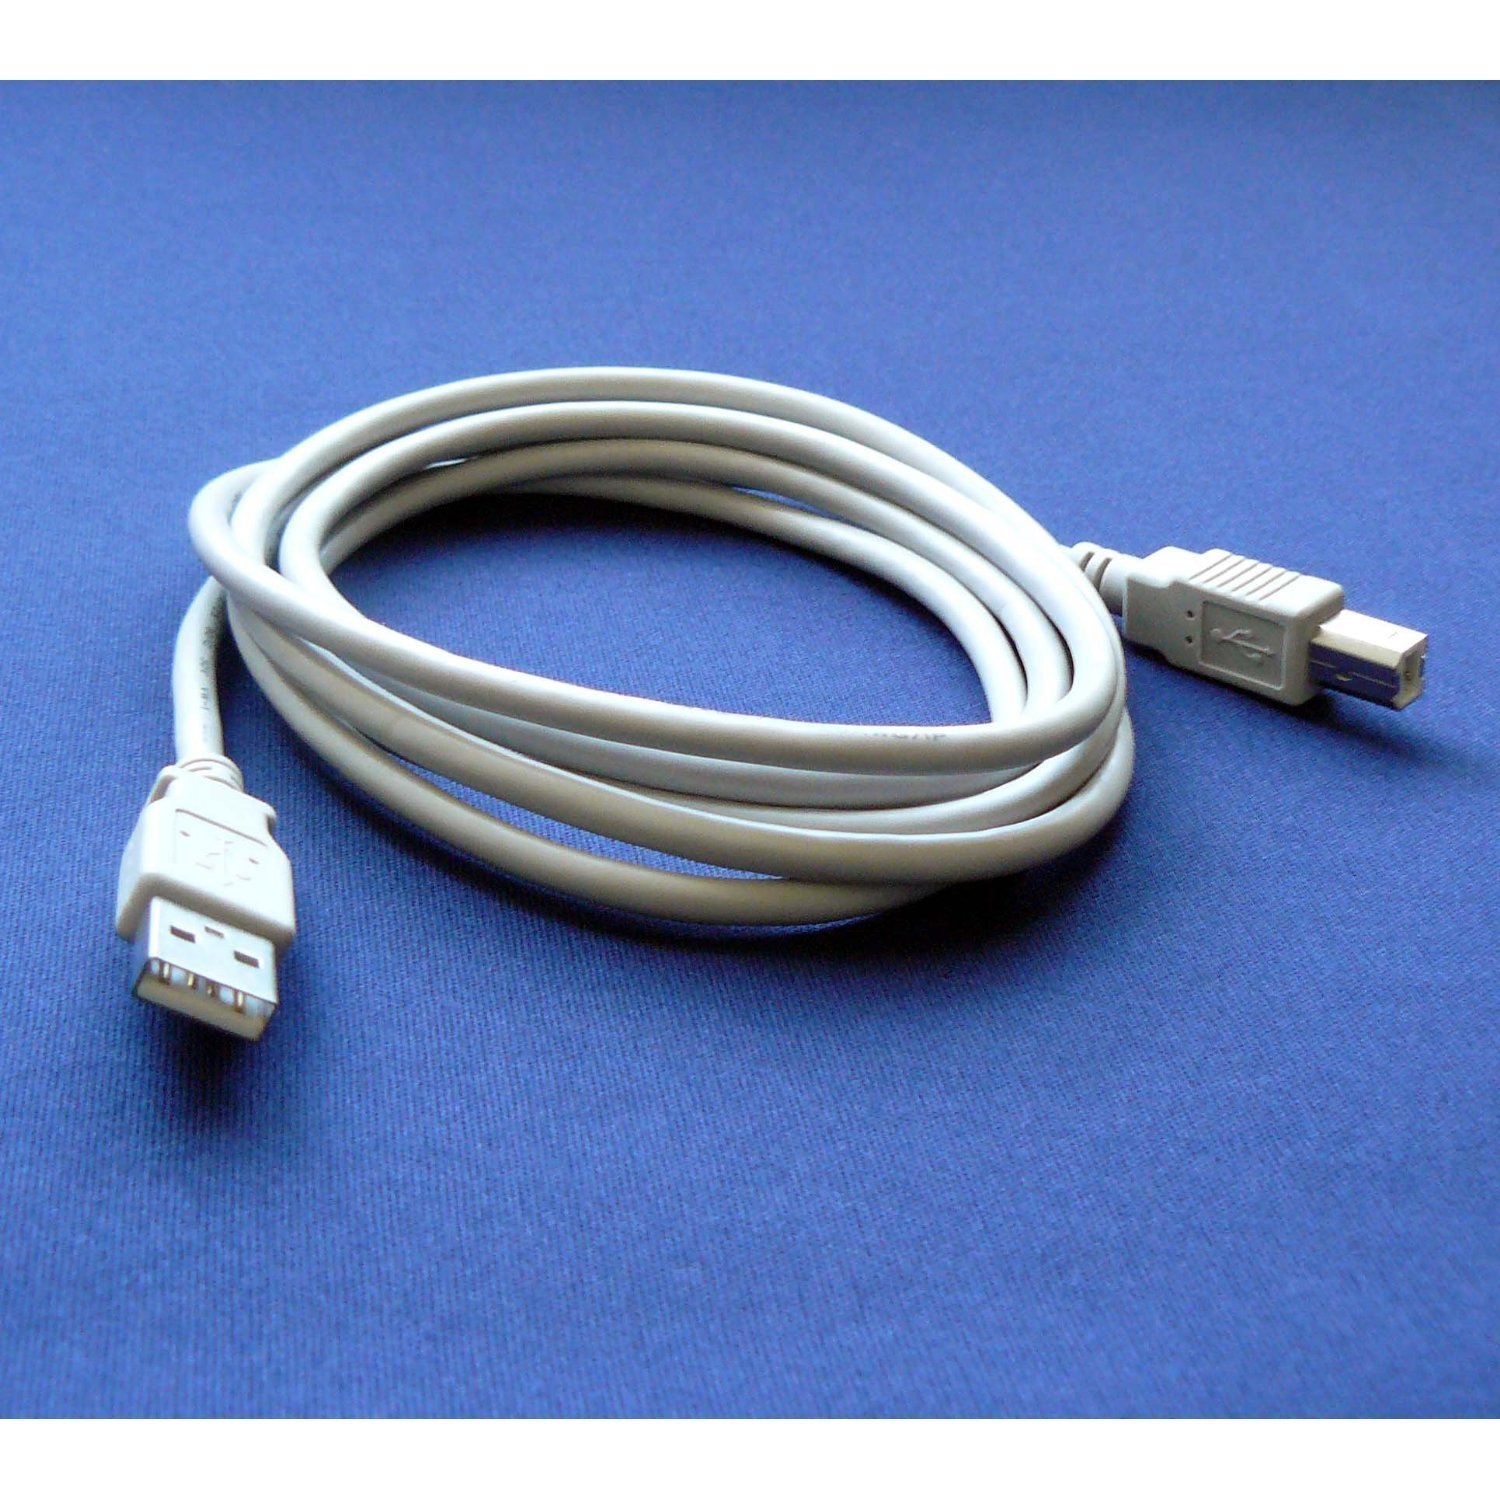 Primary image for HP Deskjet 460c Mobile Printer Compatible USB 2.0 Cable Cord for PC, Notebook...